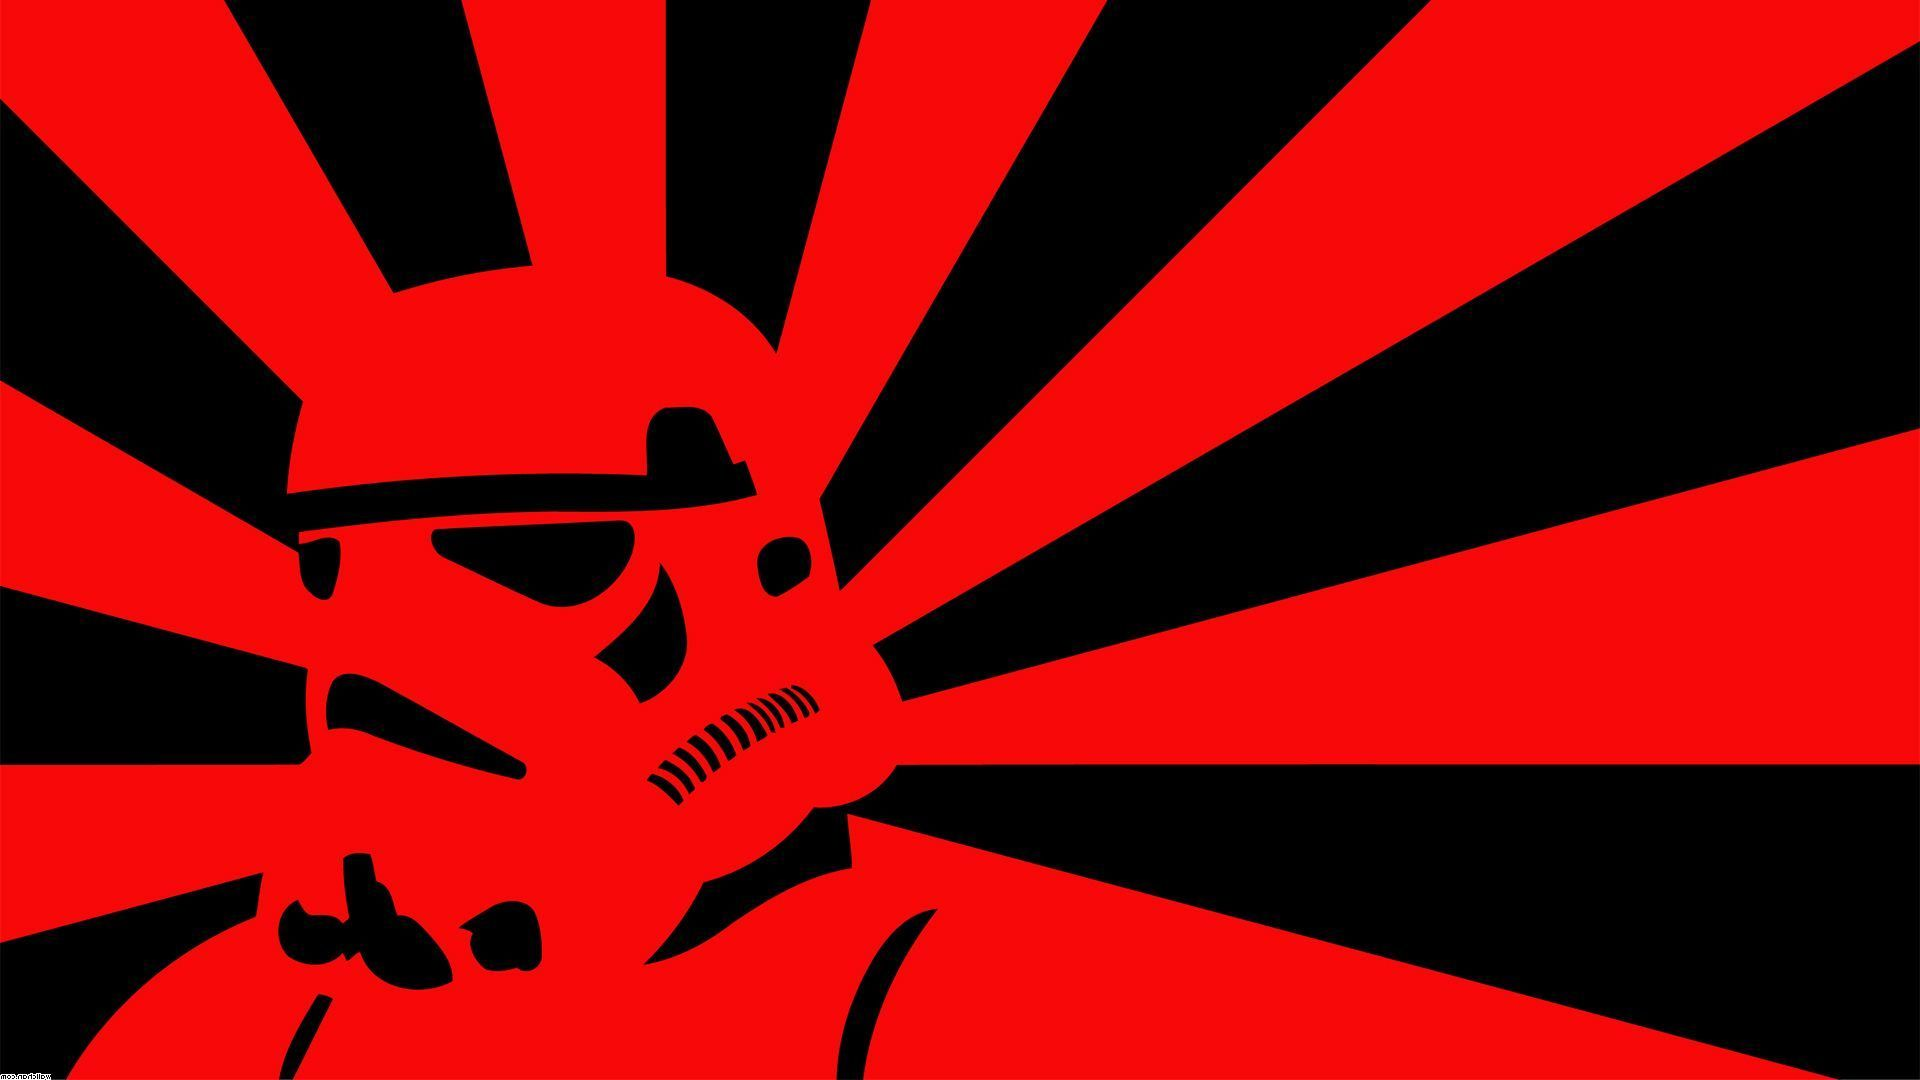 20 Of High Definition Star Wars Wallpapers Hd Star Wars Wallpaper Star Wars Background Star Wars